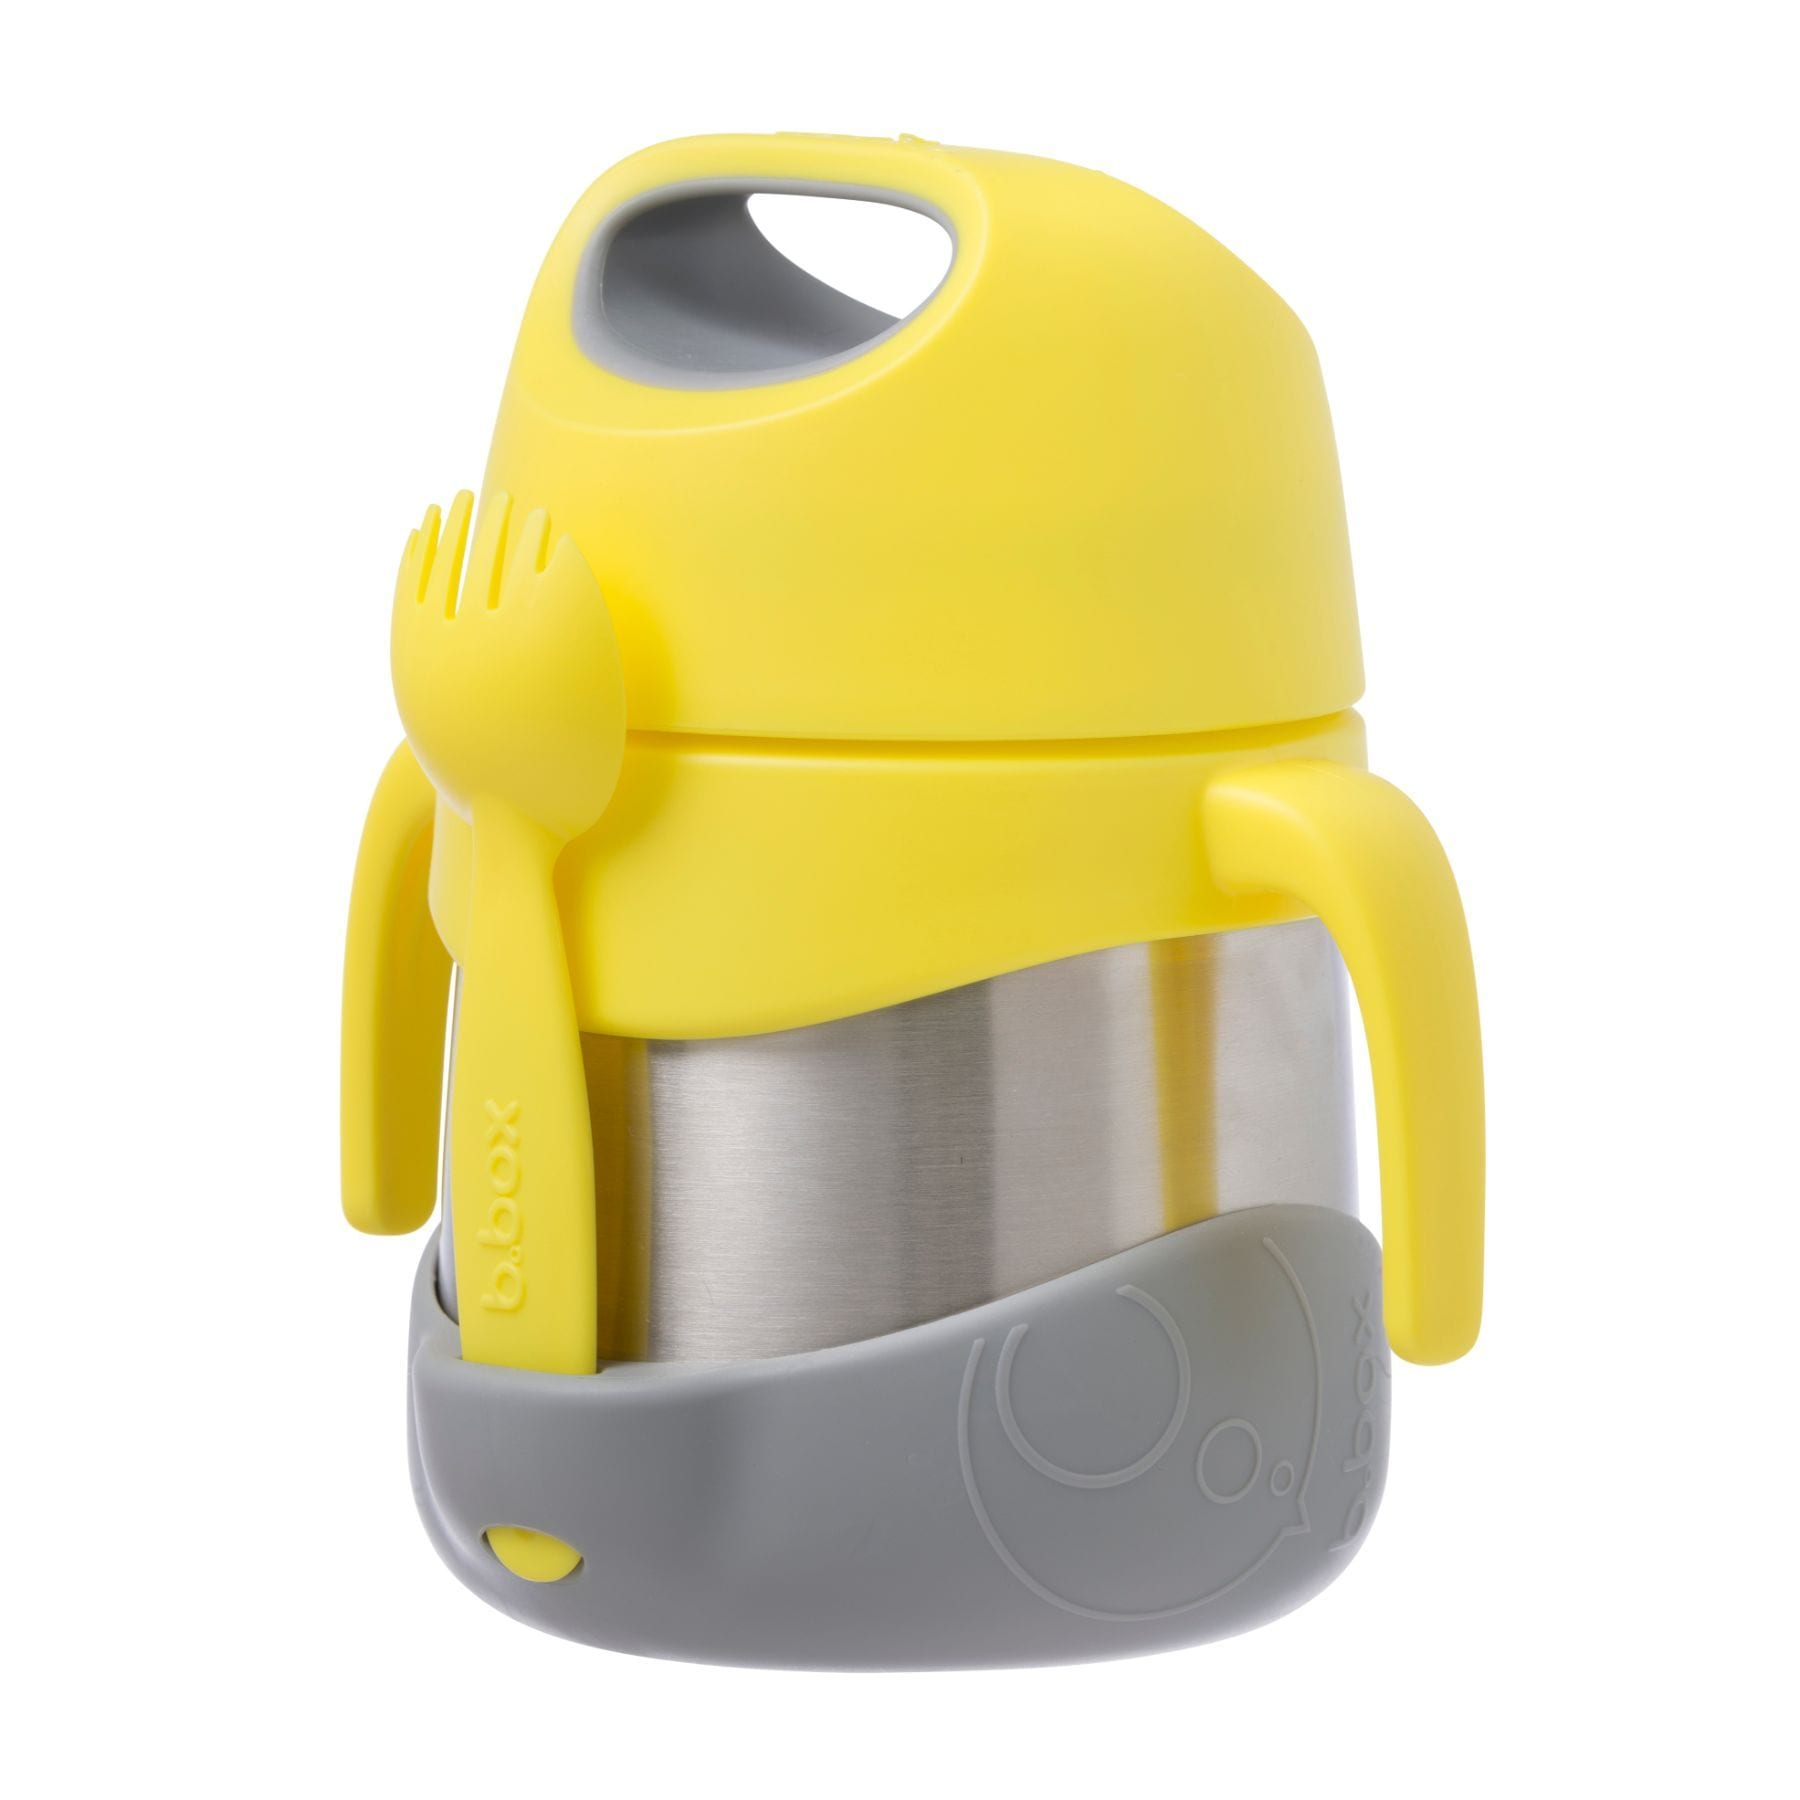 b.box Insulated Food Jar - Lemon Sherbet